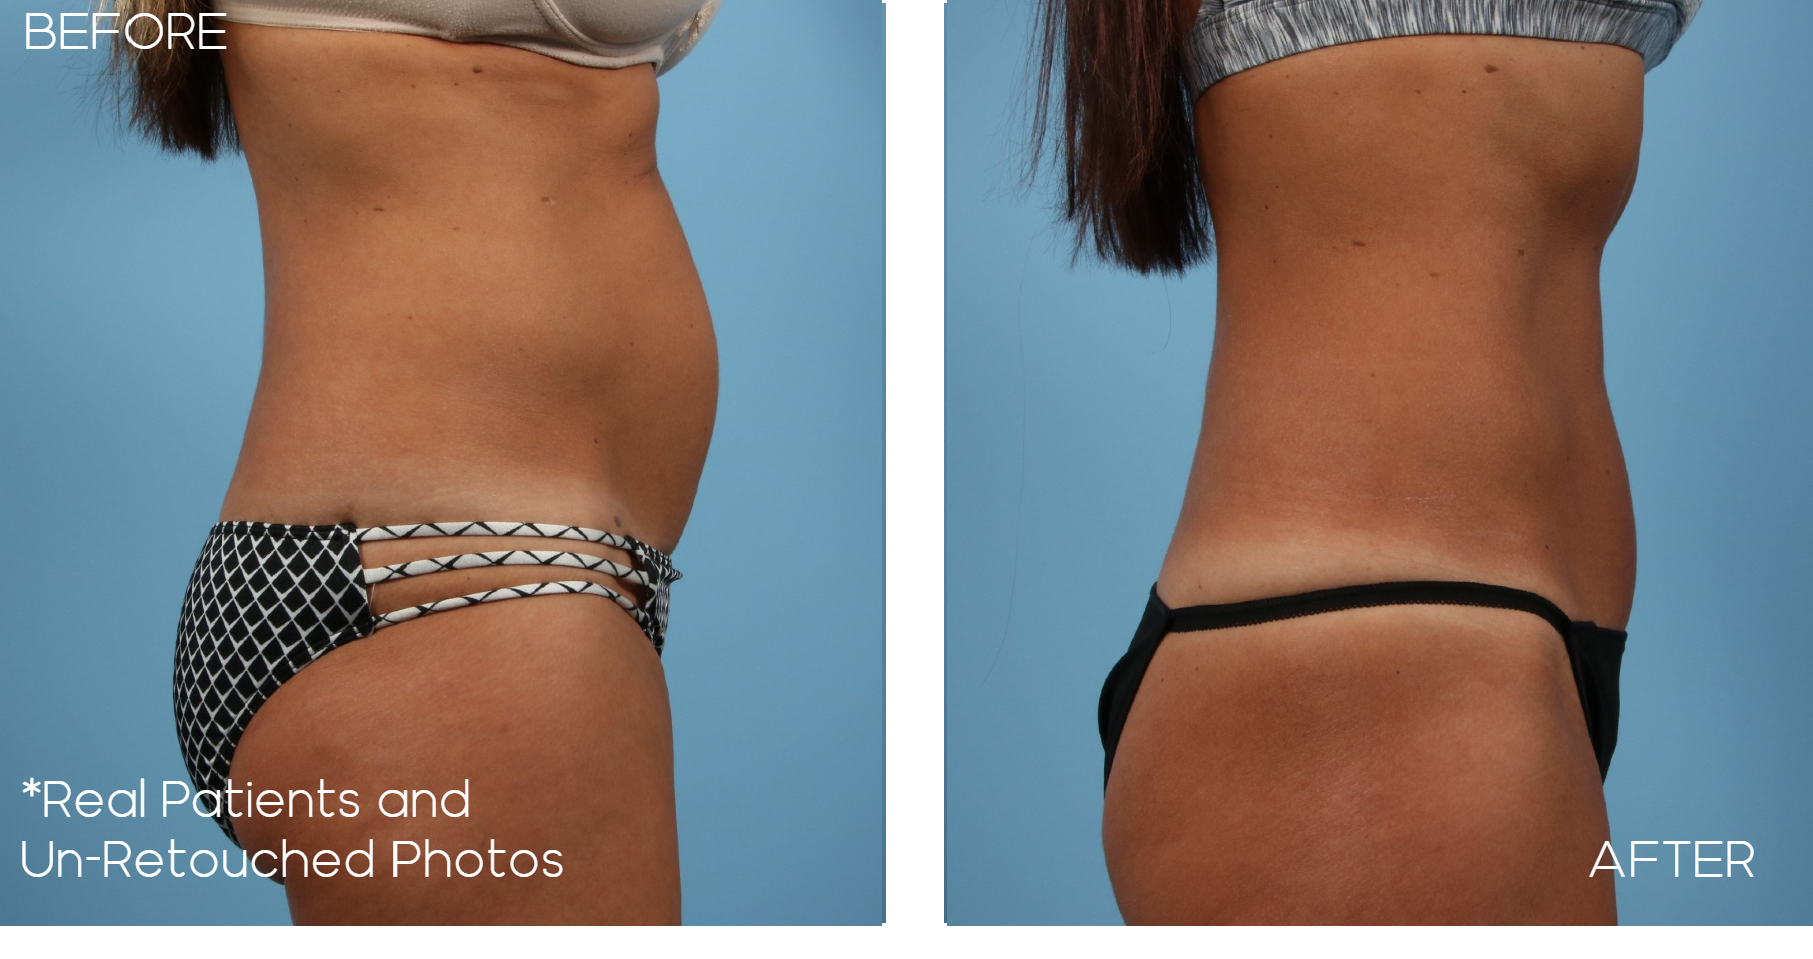 Case-1953-Mini-Tummy-Tuck-Side-Before-and-After